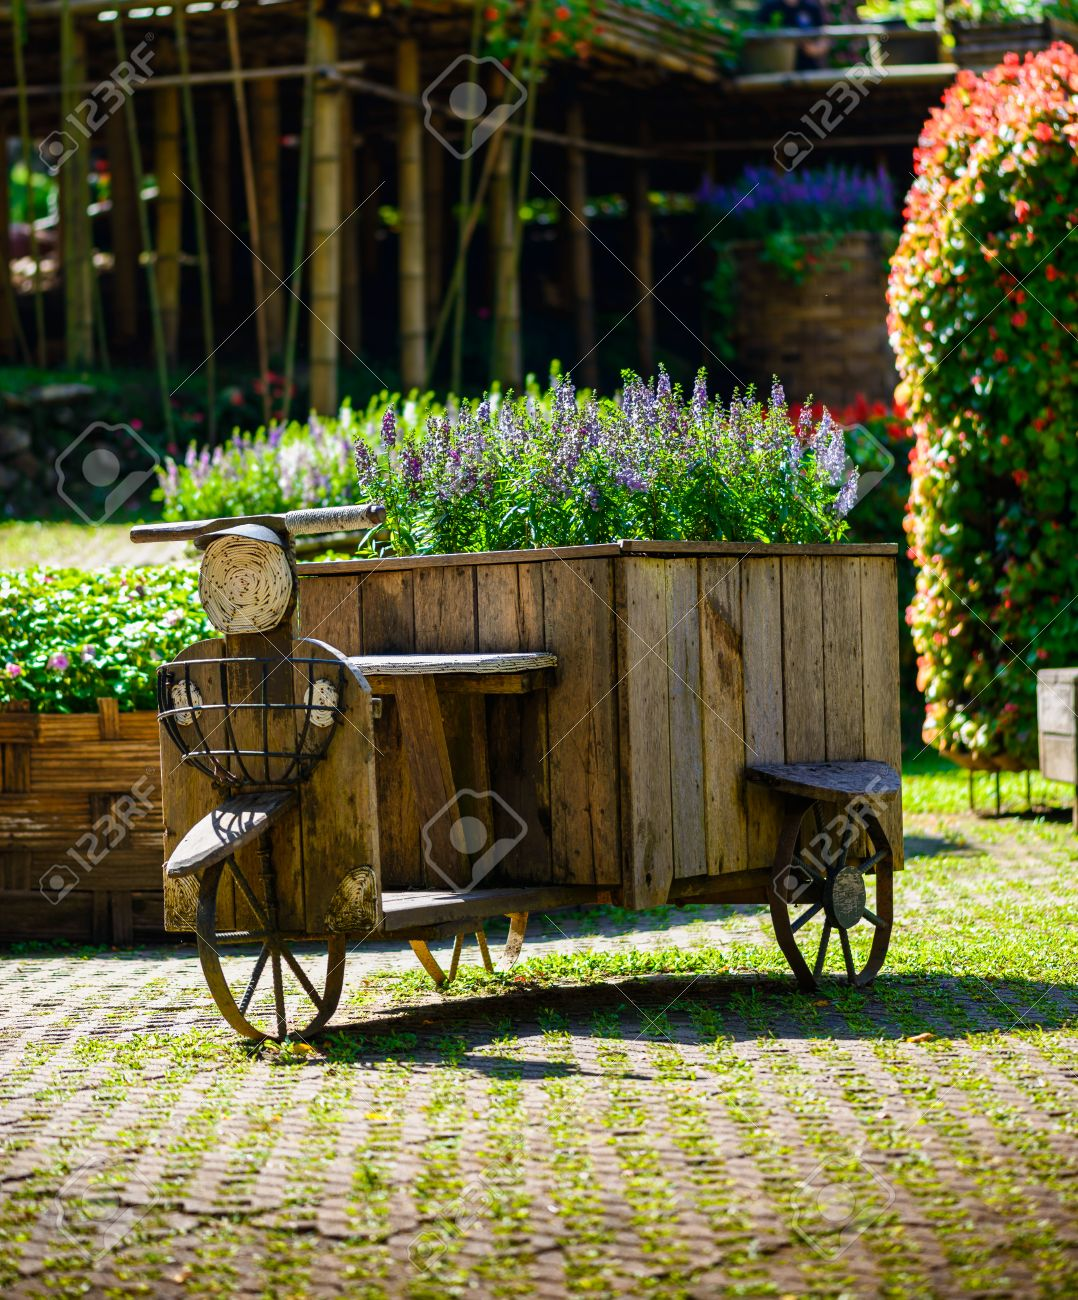 Tricycle Made Of Wood Use For Garden Decor Stock Photo, Picture And ...